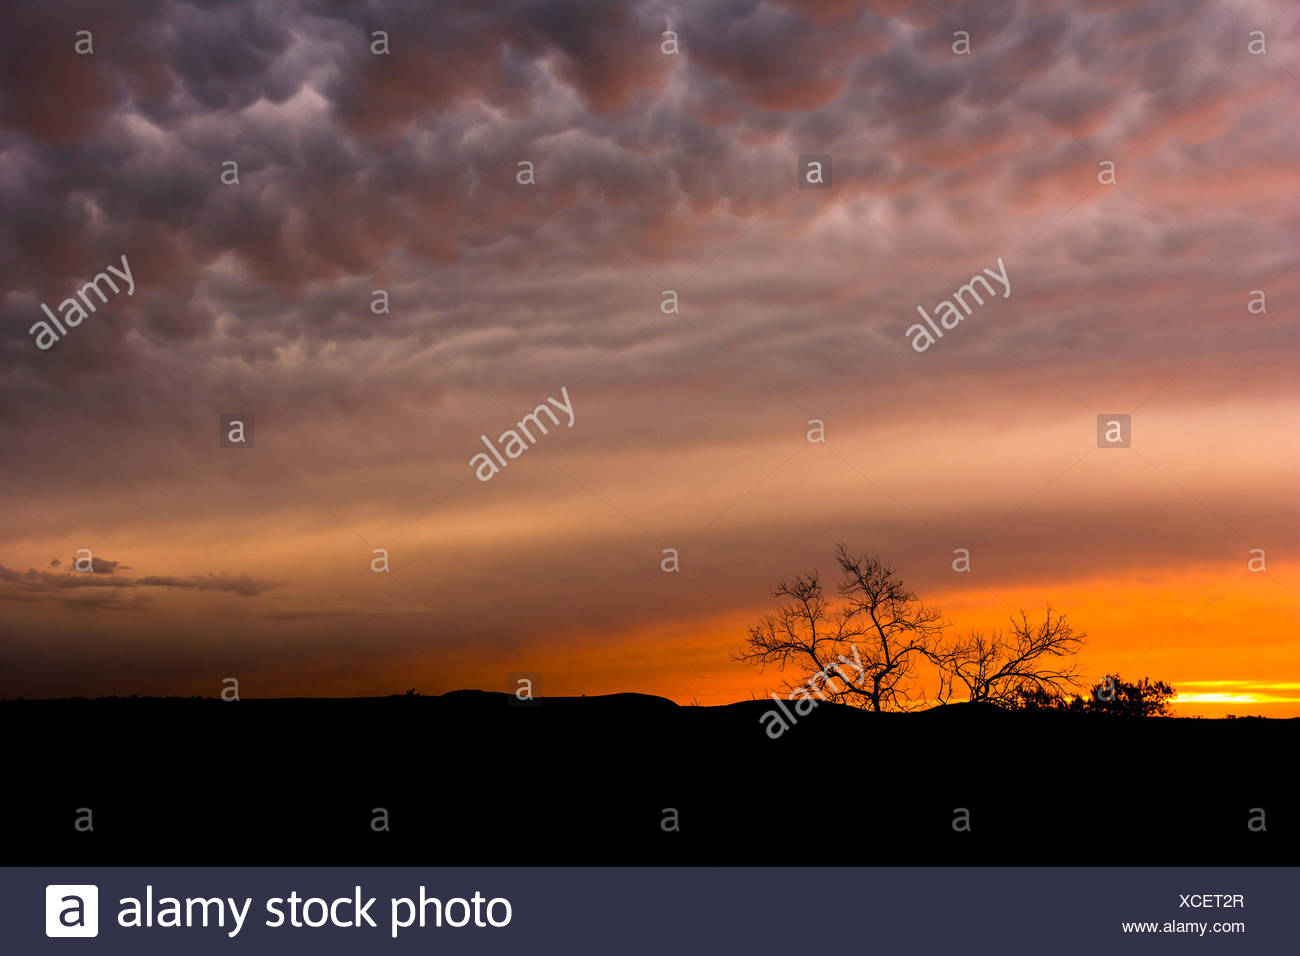 Monaghan farm, Lanseria, Province of Gauteng, South Africa, Sunset clouds after a storm, - Stock Image